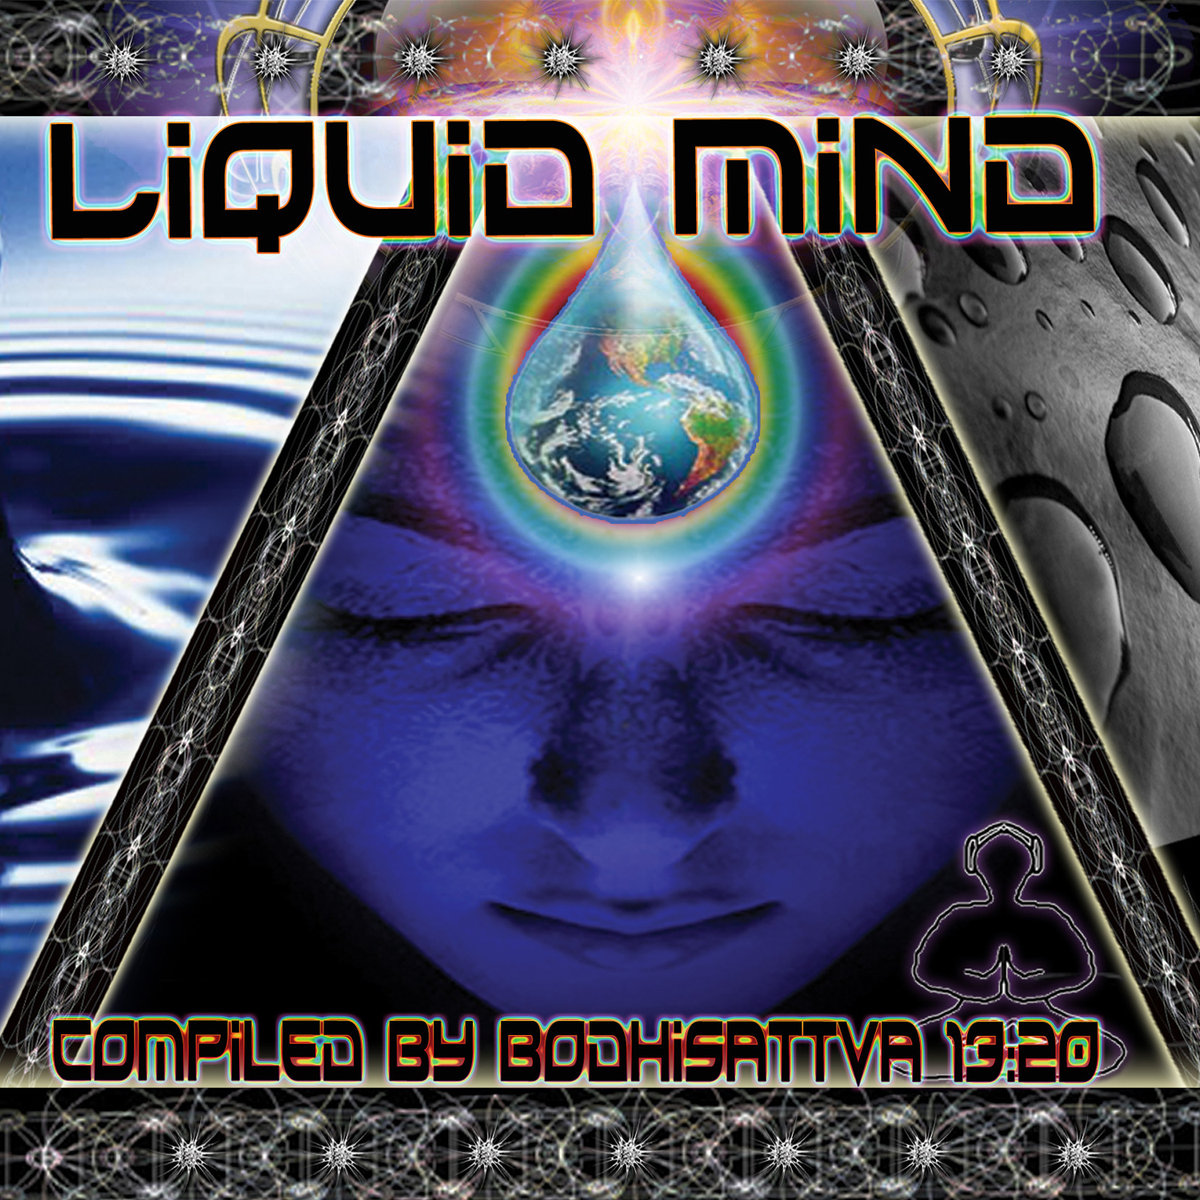 Arabali (Mubali & Arahat) - Move It or Lose It @ 'Various Artists - Liquid Mind (Compiled by Bodhisattva 13:20)' album (electronic, and)